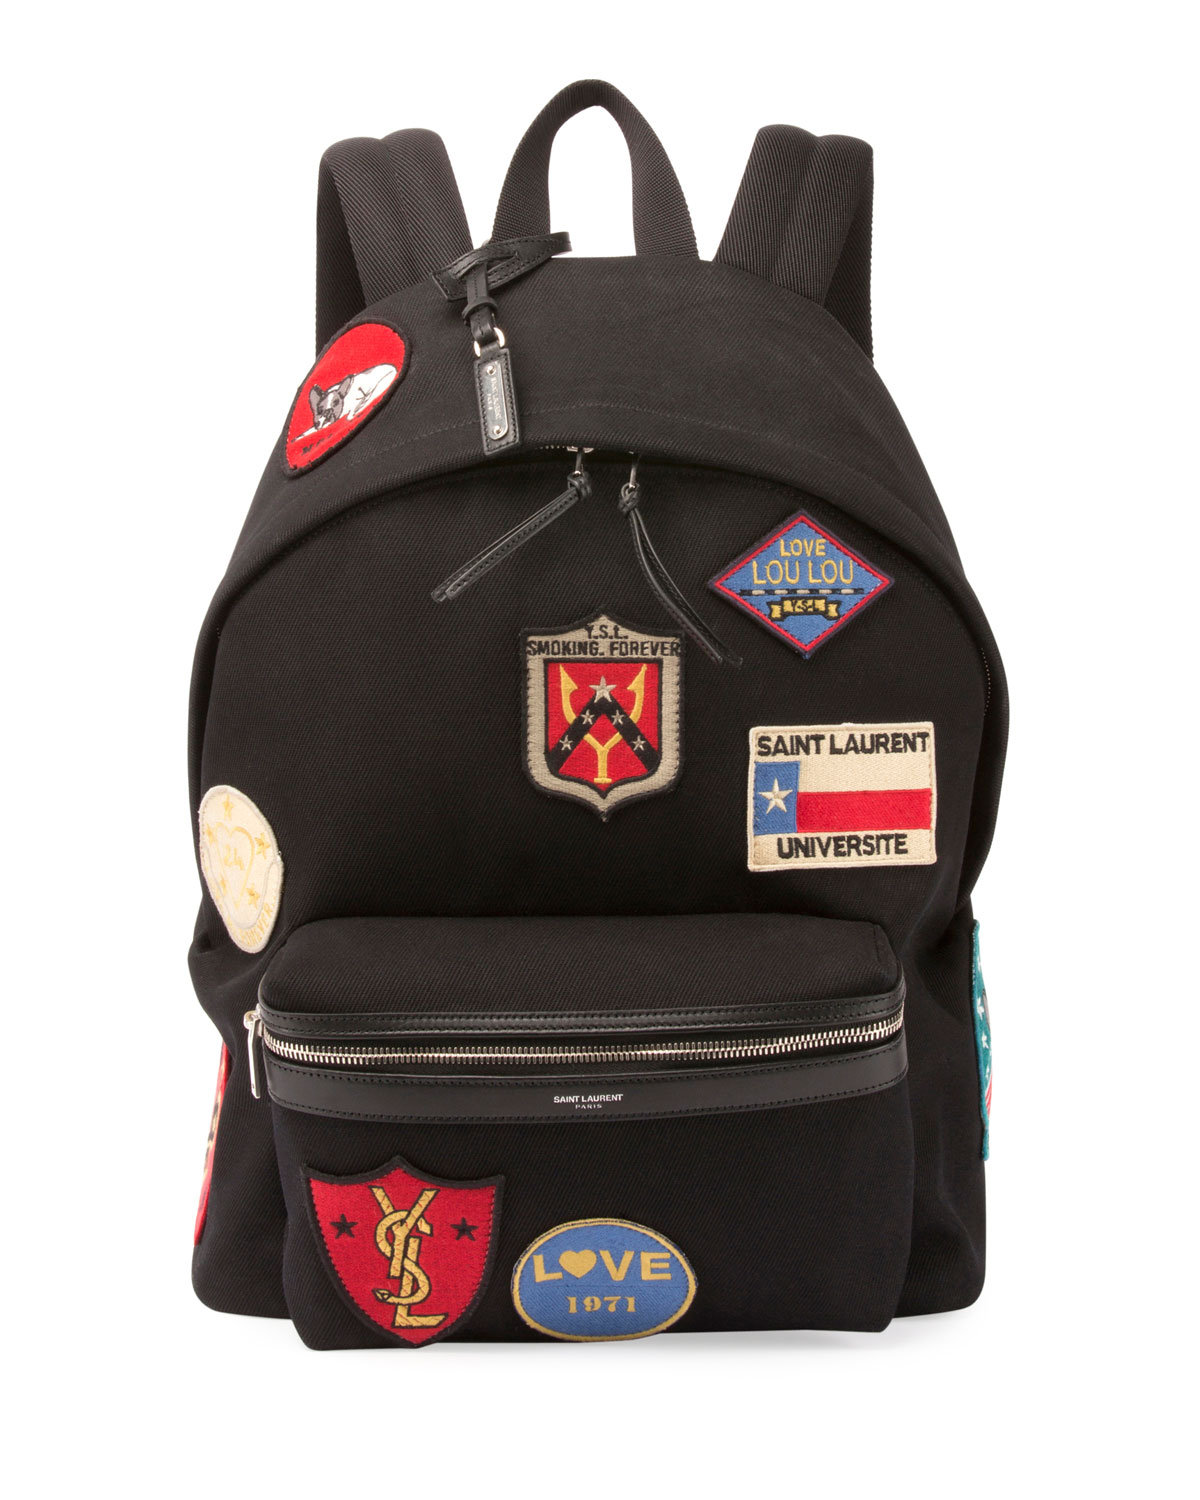 743fb9ece07 Saint Laurent City Canvas Patch Backpack, Black | Neiman Marcus